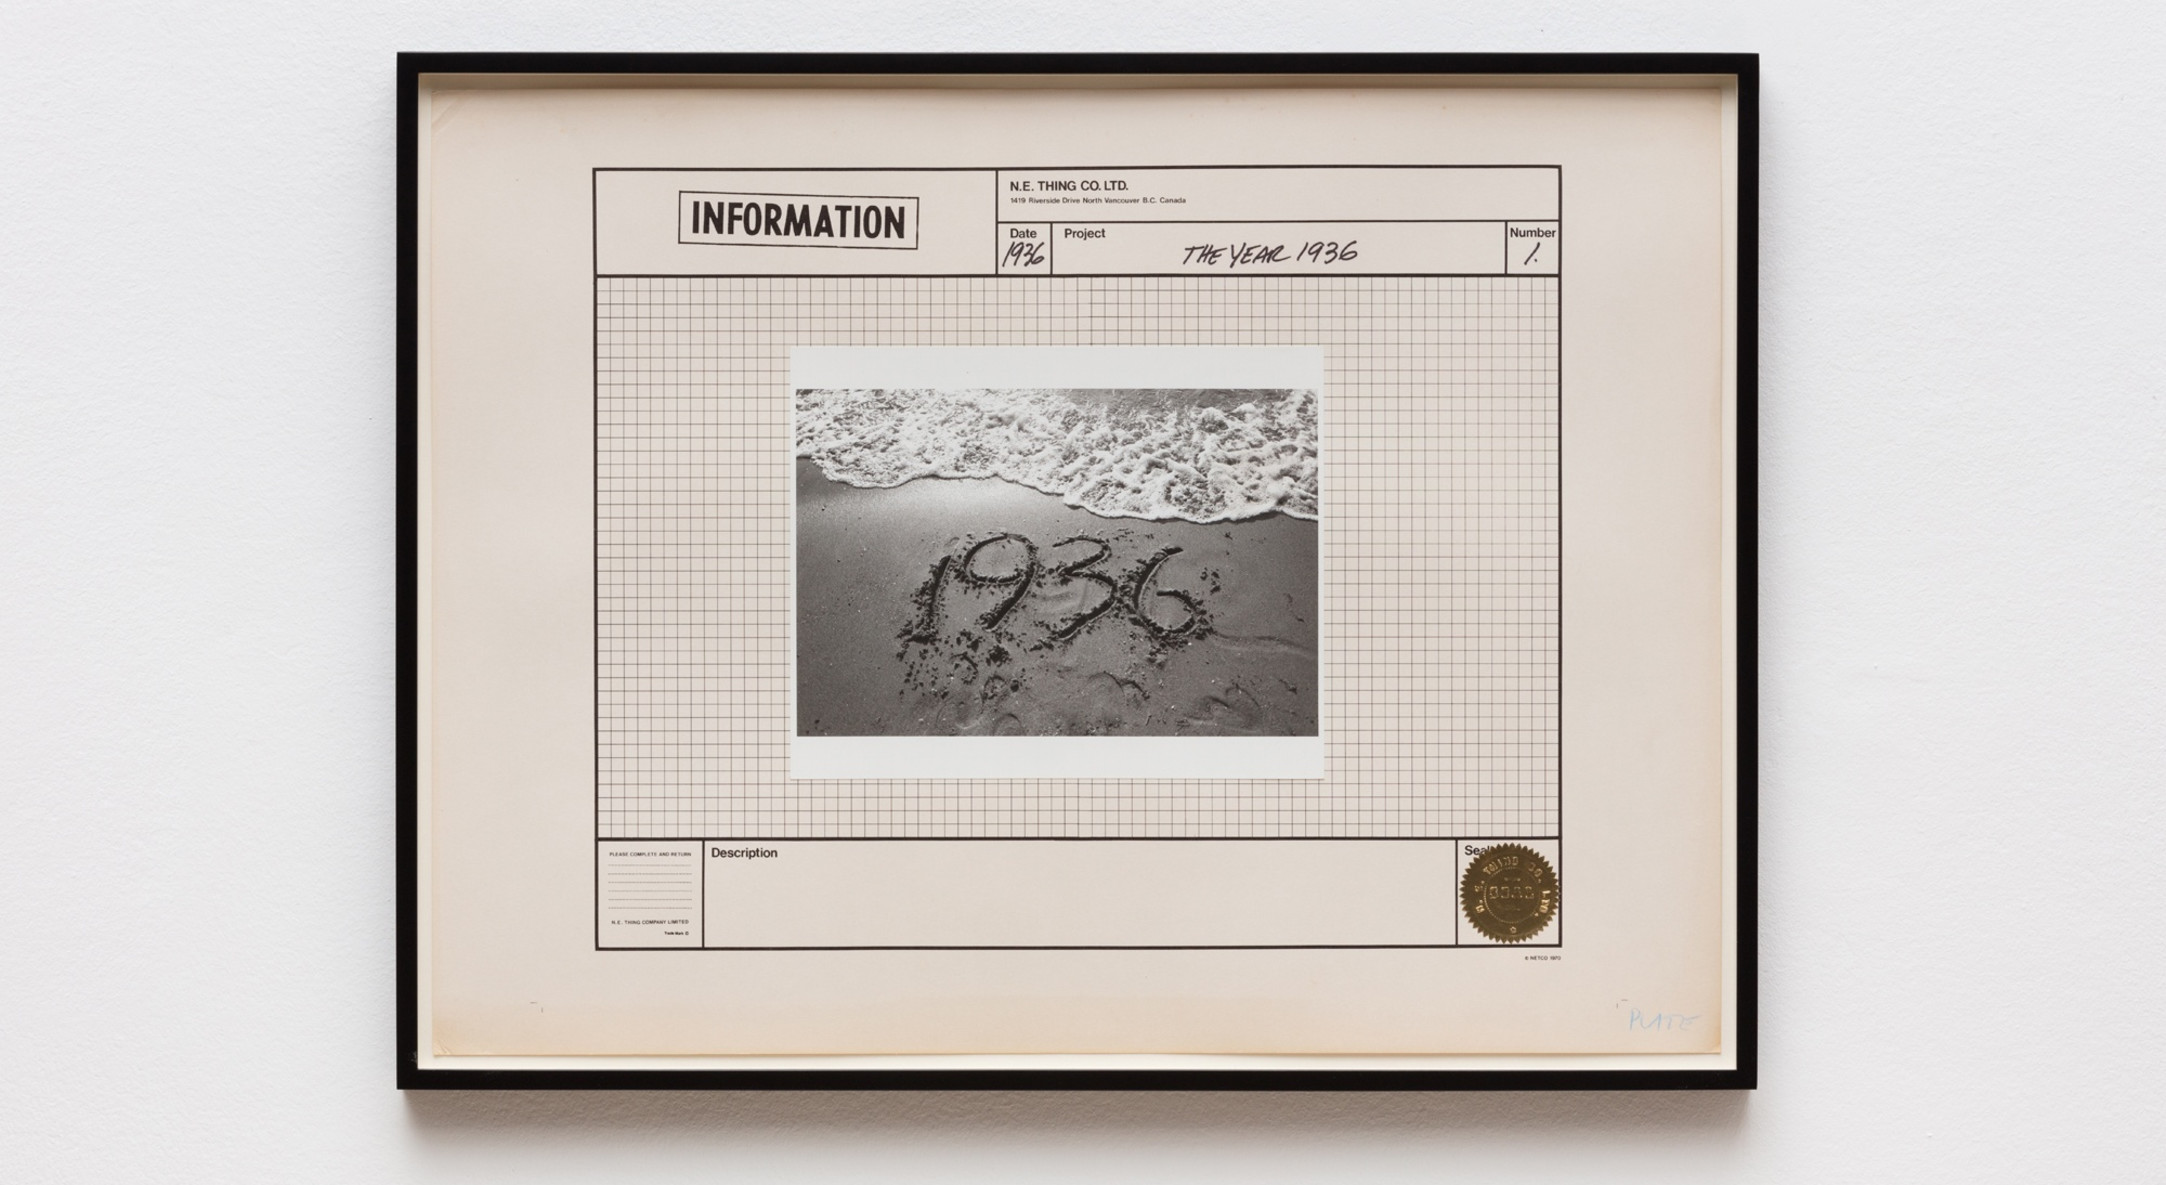 IAIN BAXTER& / N.E.Thing Co., The Year 1936, 1970, Silver gelatin print, ink, paper, foil seal, and offset lithograph on paper, 45 x 60.5 cm, 17 3/4 x 23 7/8 in, Framed: 49 x 64.3 x 3 cm, 19 1/4 x 25 1/4 x 1 1/8 in